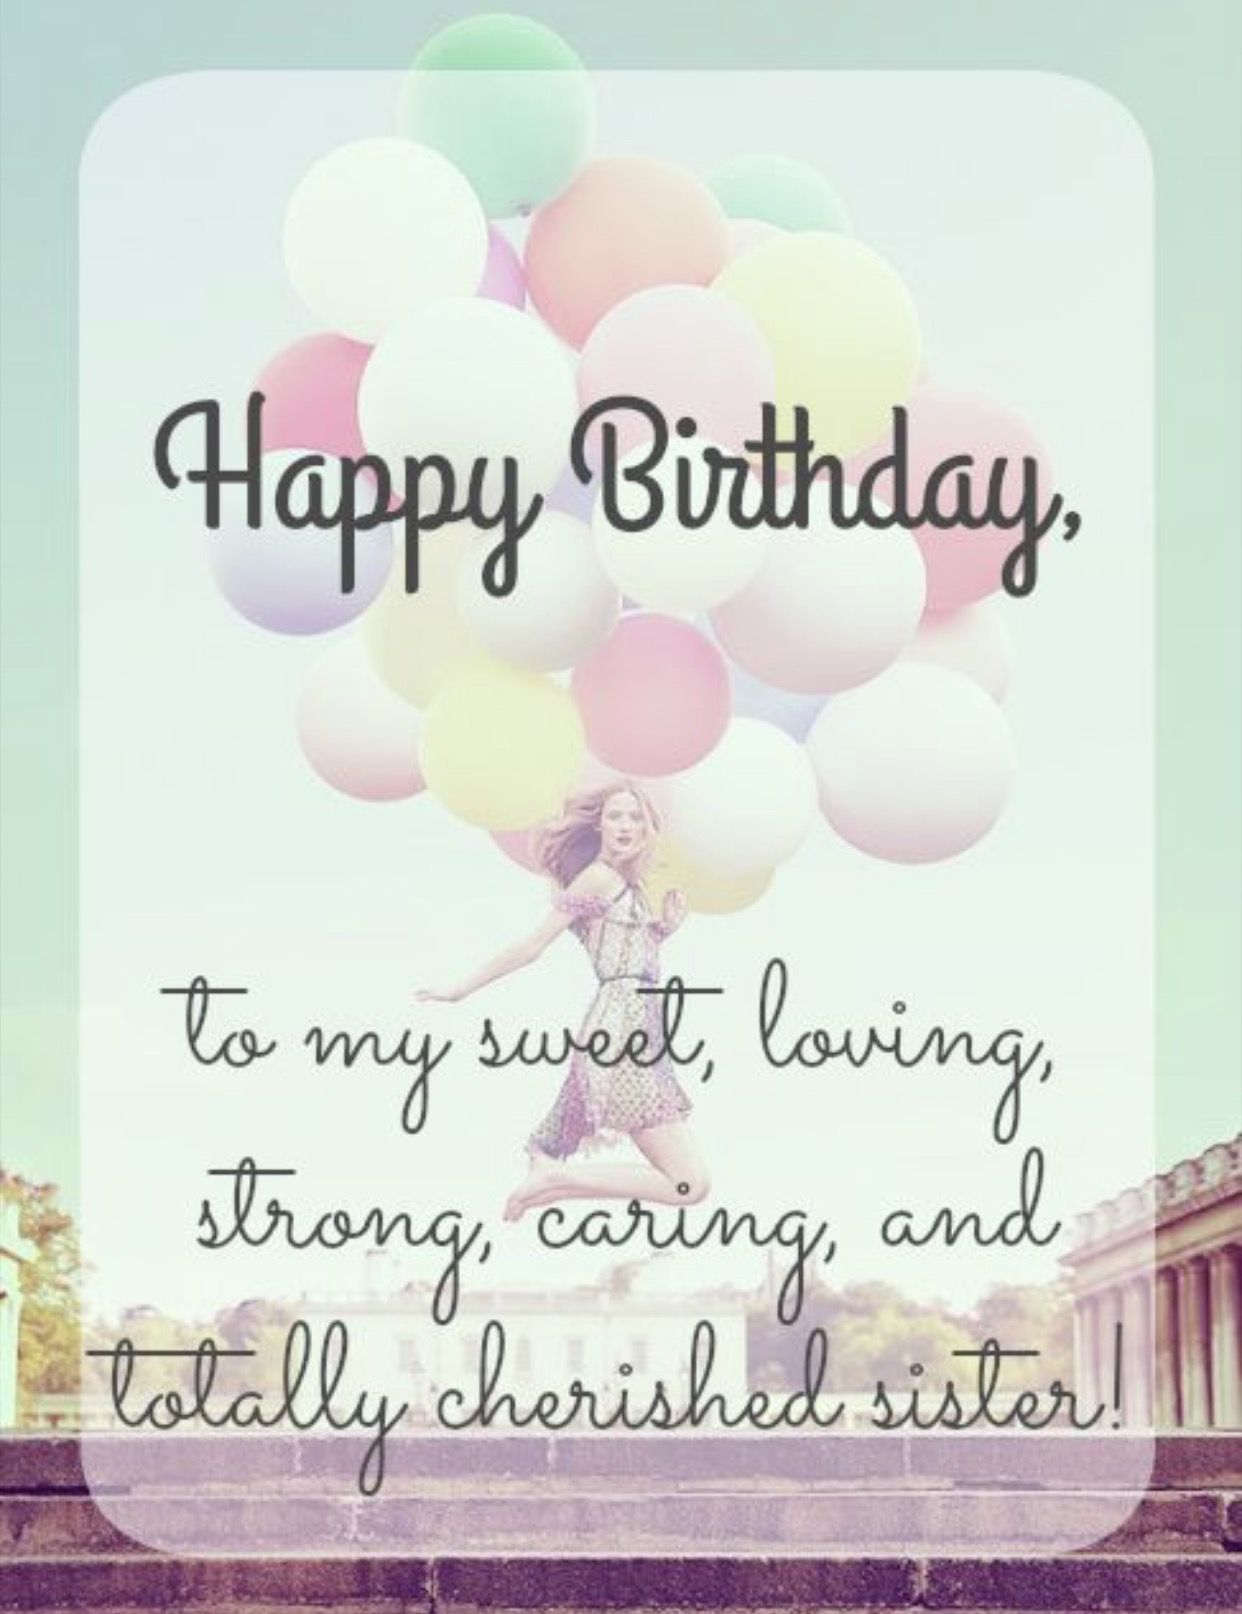 Sister Happy Birthday Sister Messages Sister Birthday Quotes